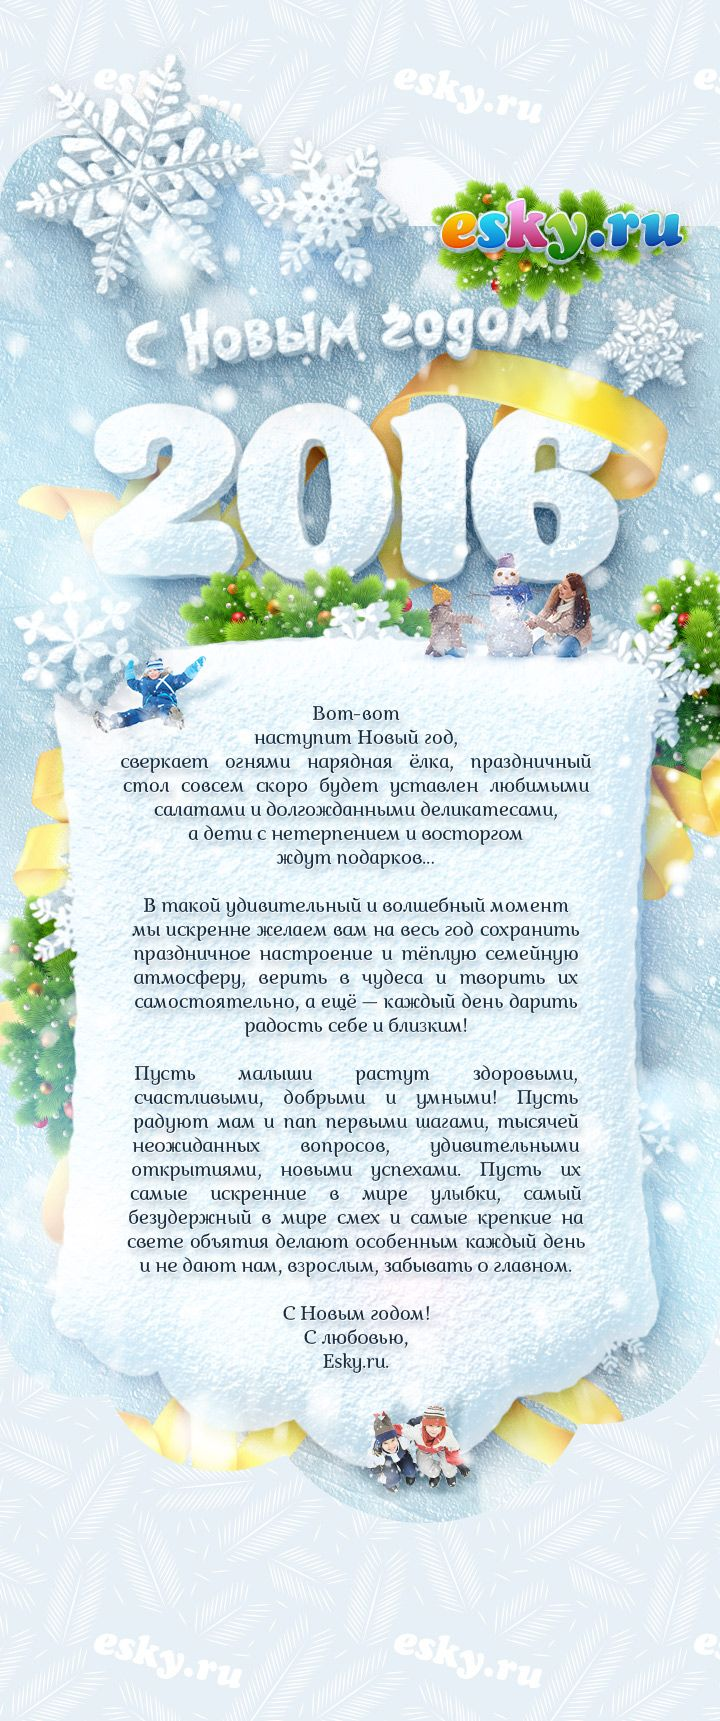 E-mail design template for kid store Esky.ru. Happy New Year 2016 email.